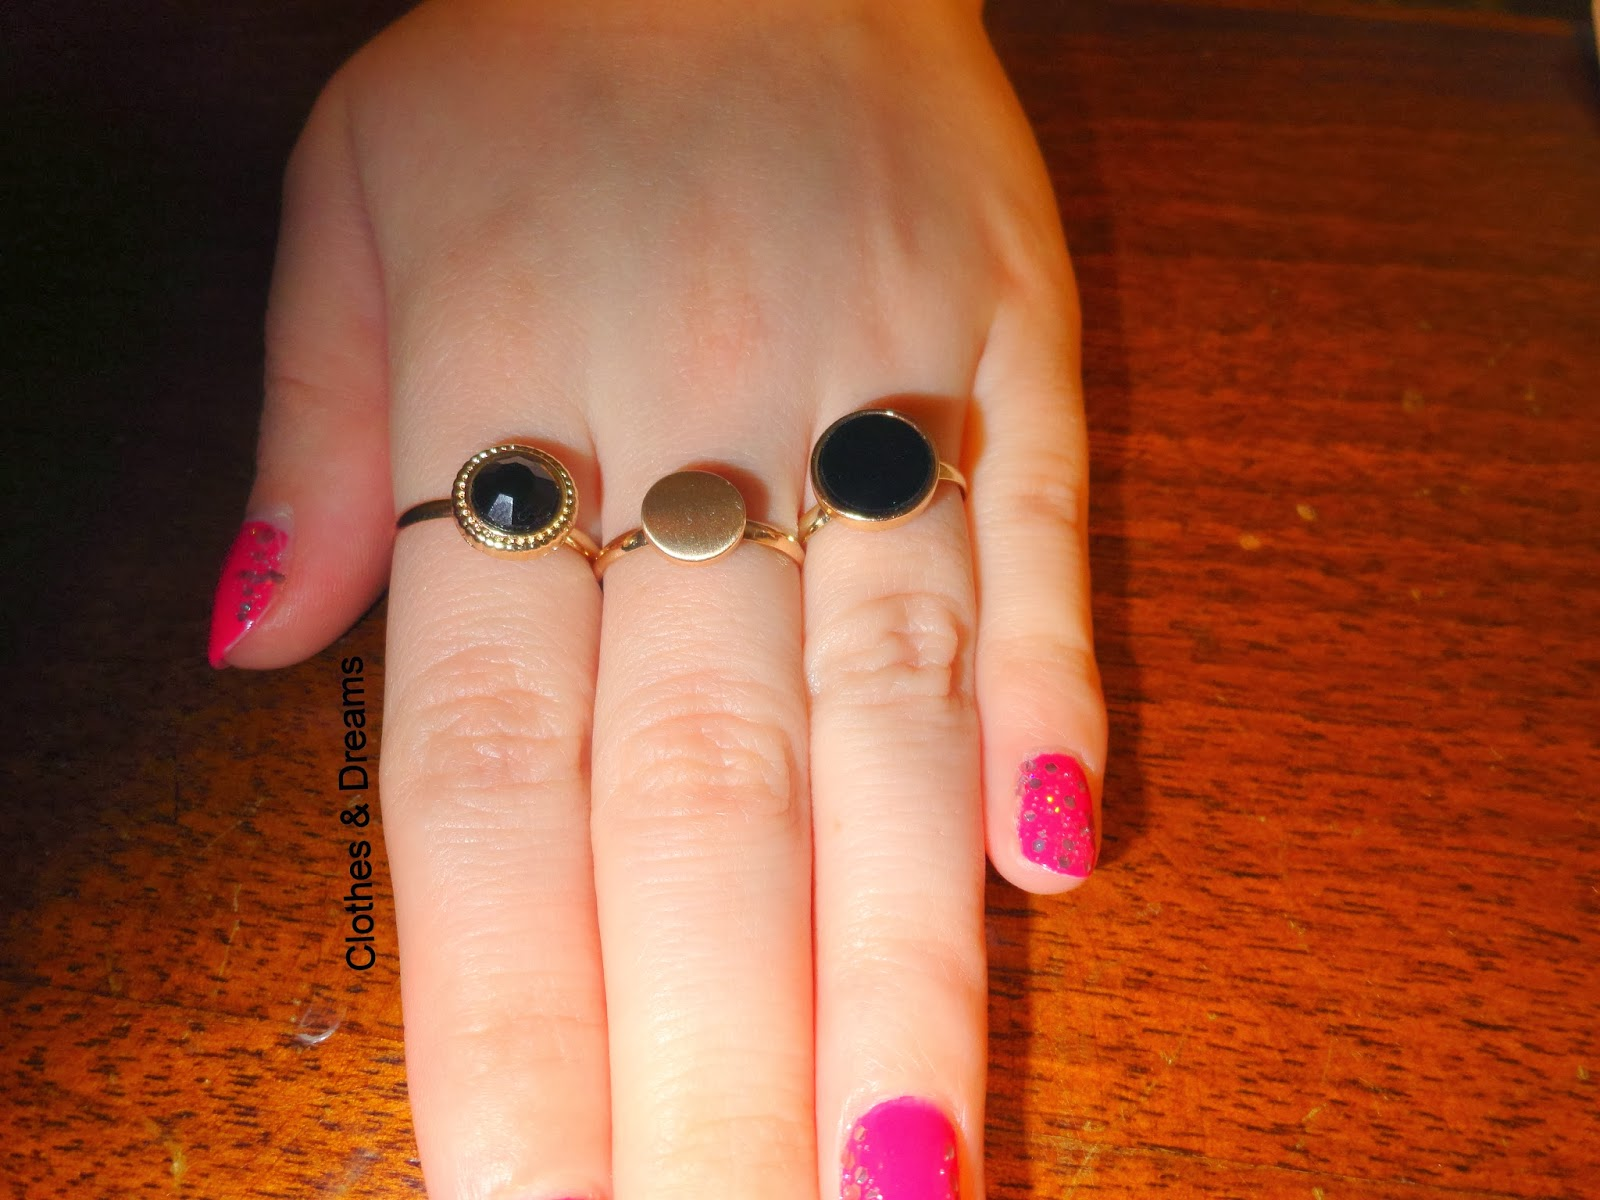 Clothes & Dreams: Self-rewarding feels so good! New rings